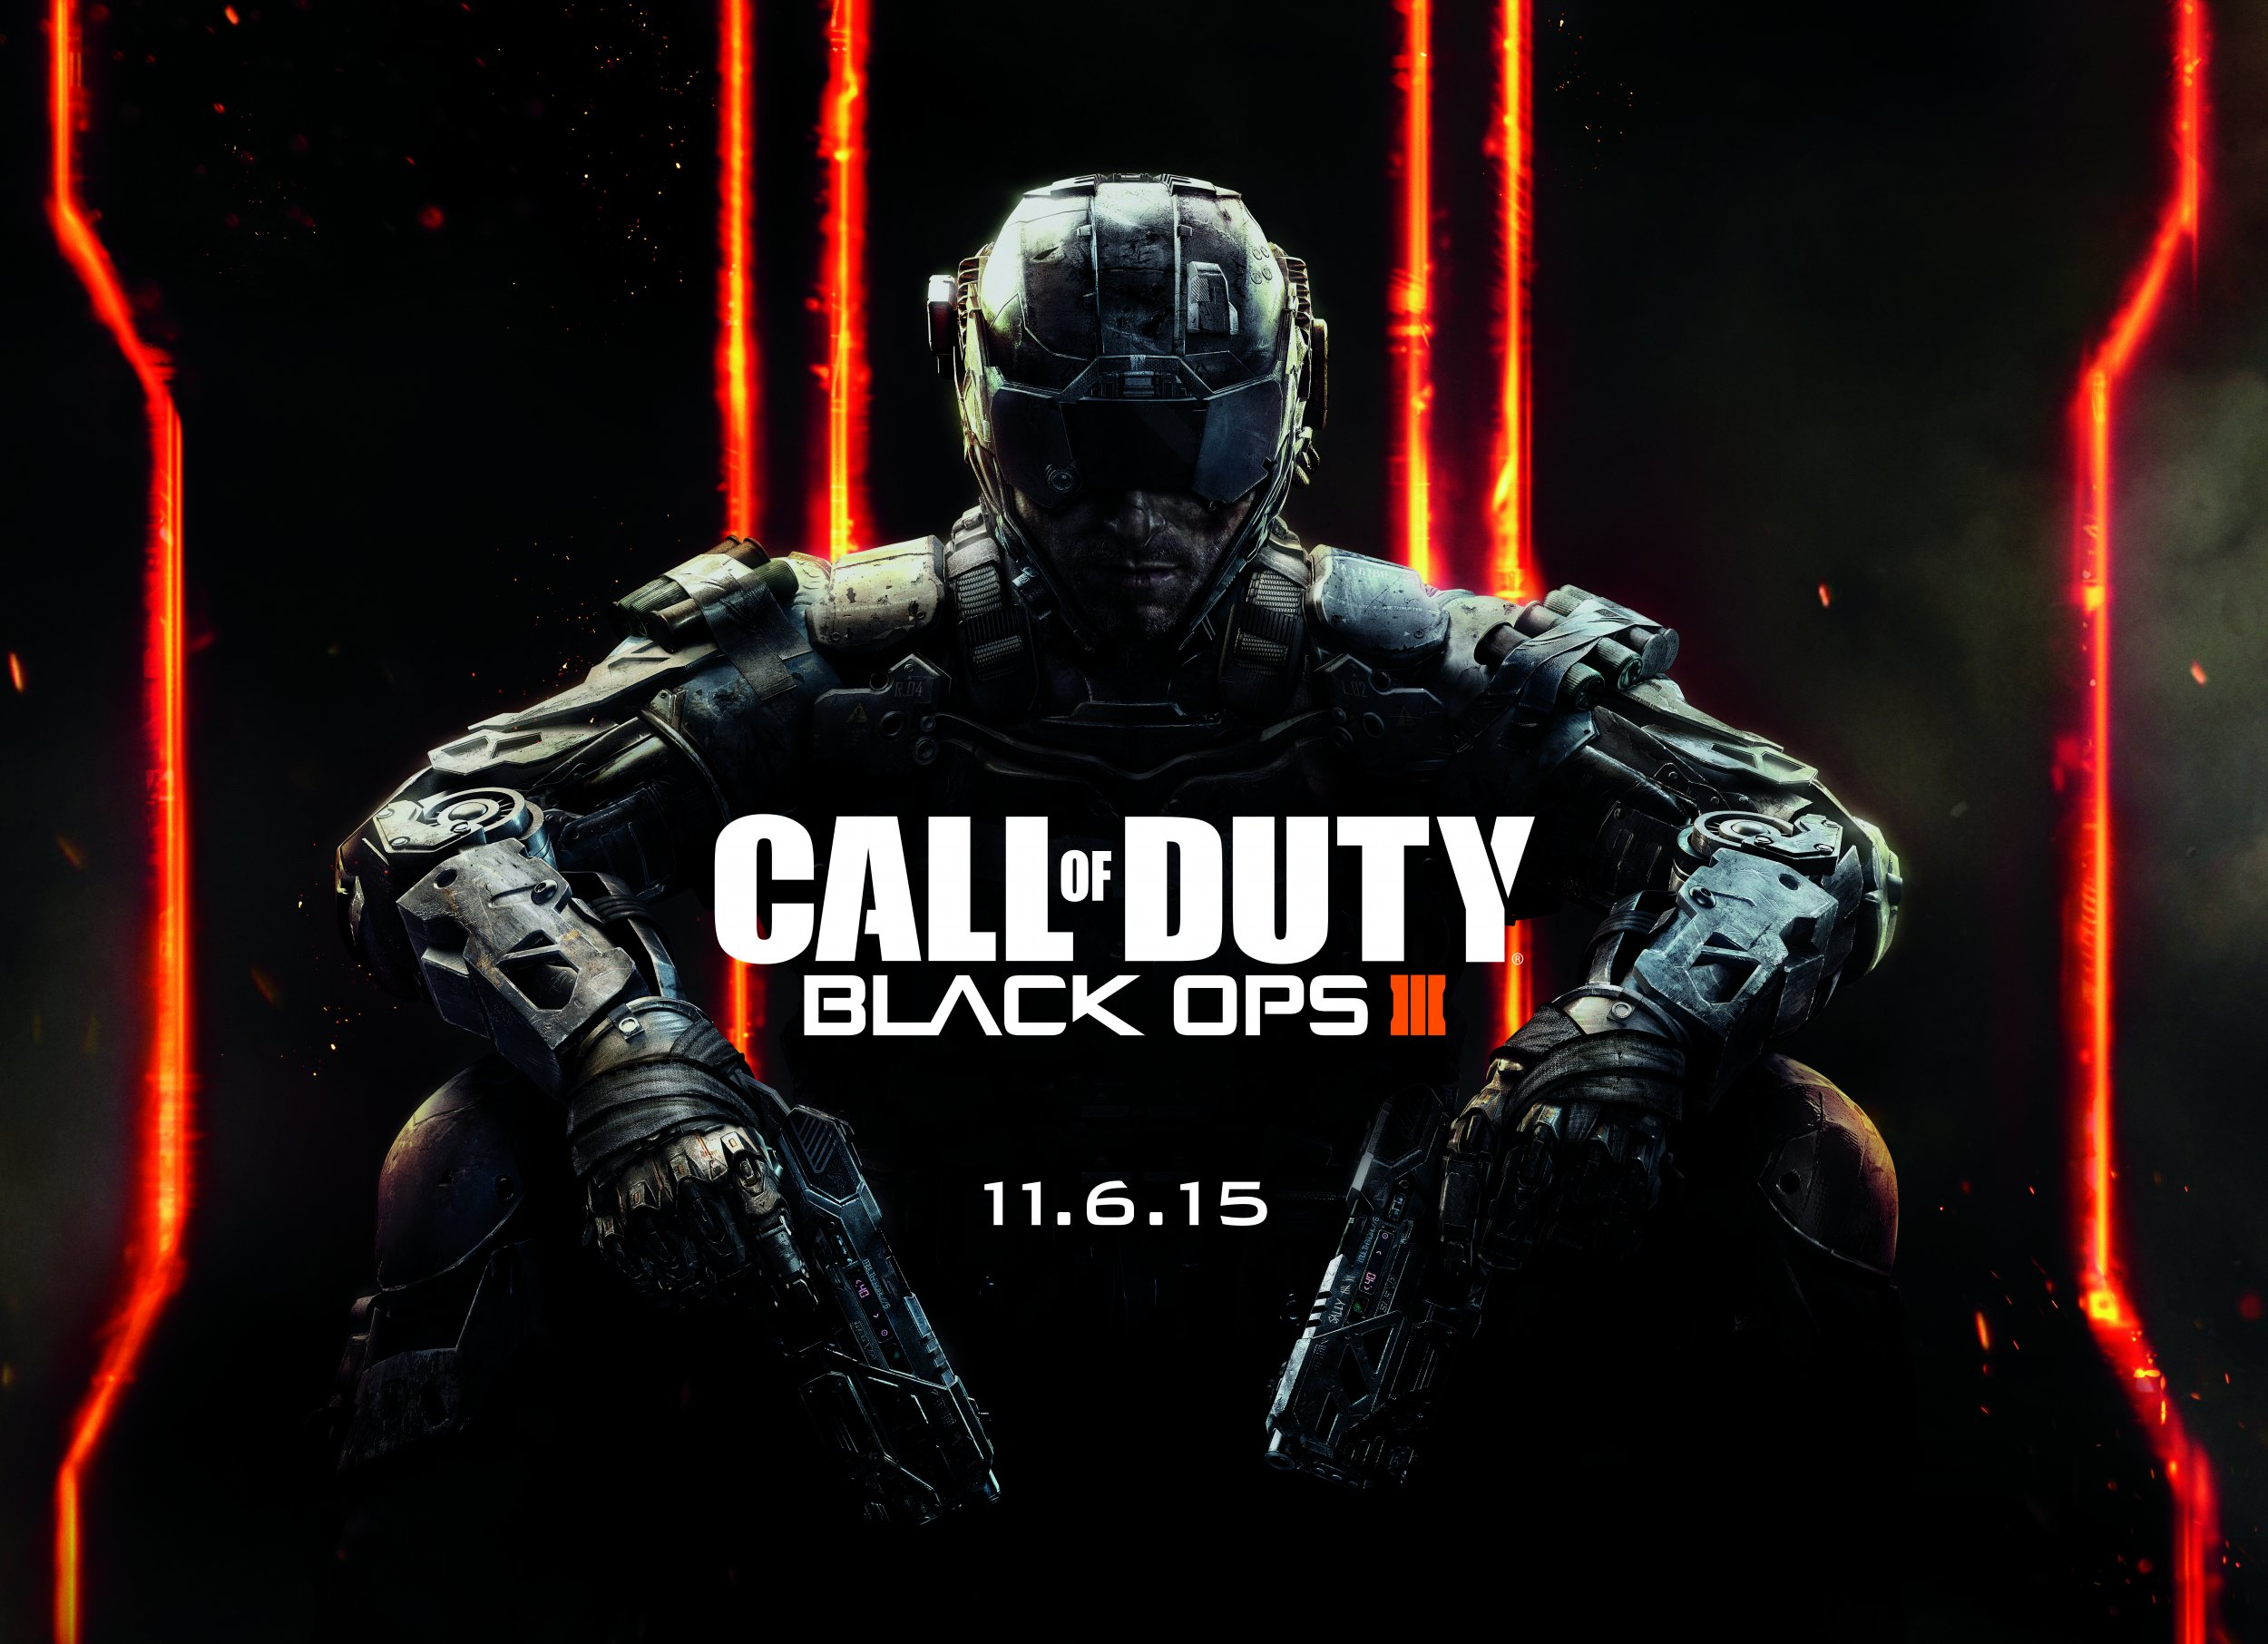 Call Of Duty Black Ops 3 Update 129 Adds RPK To